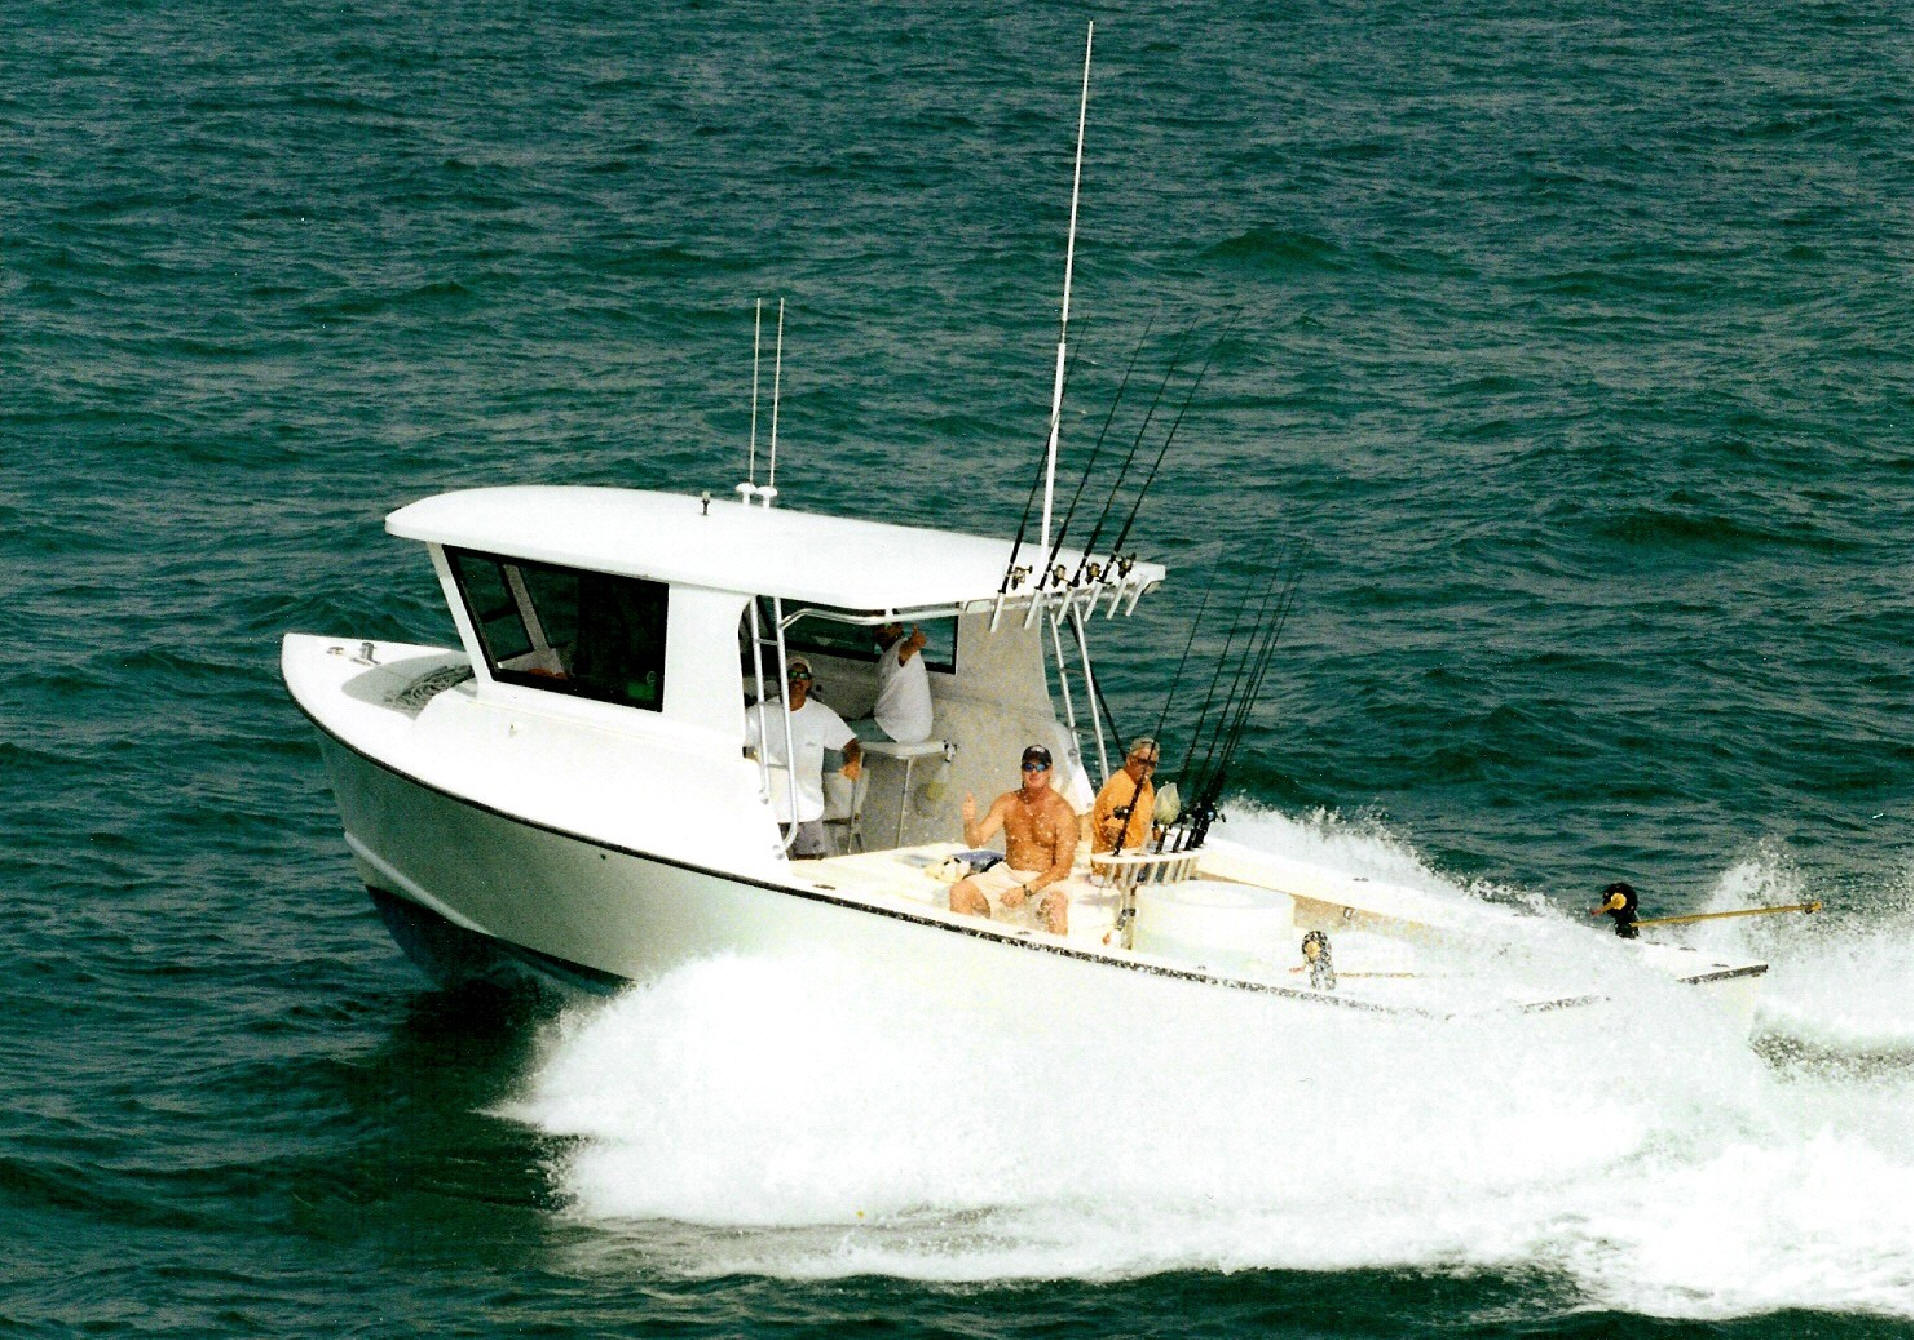 Deep sea fishing charters florida charter fishing for Fishing charters clearwater fl